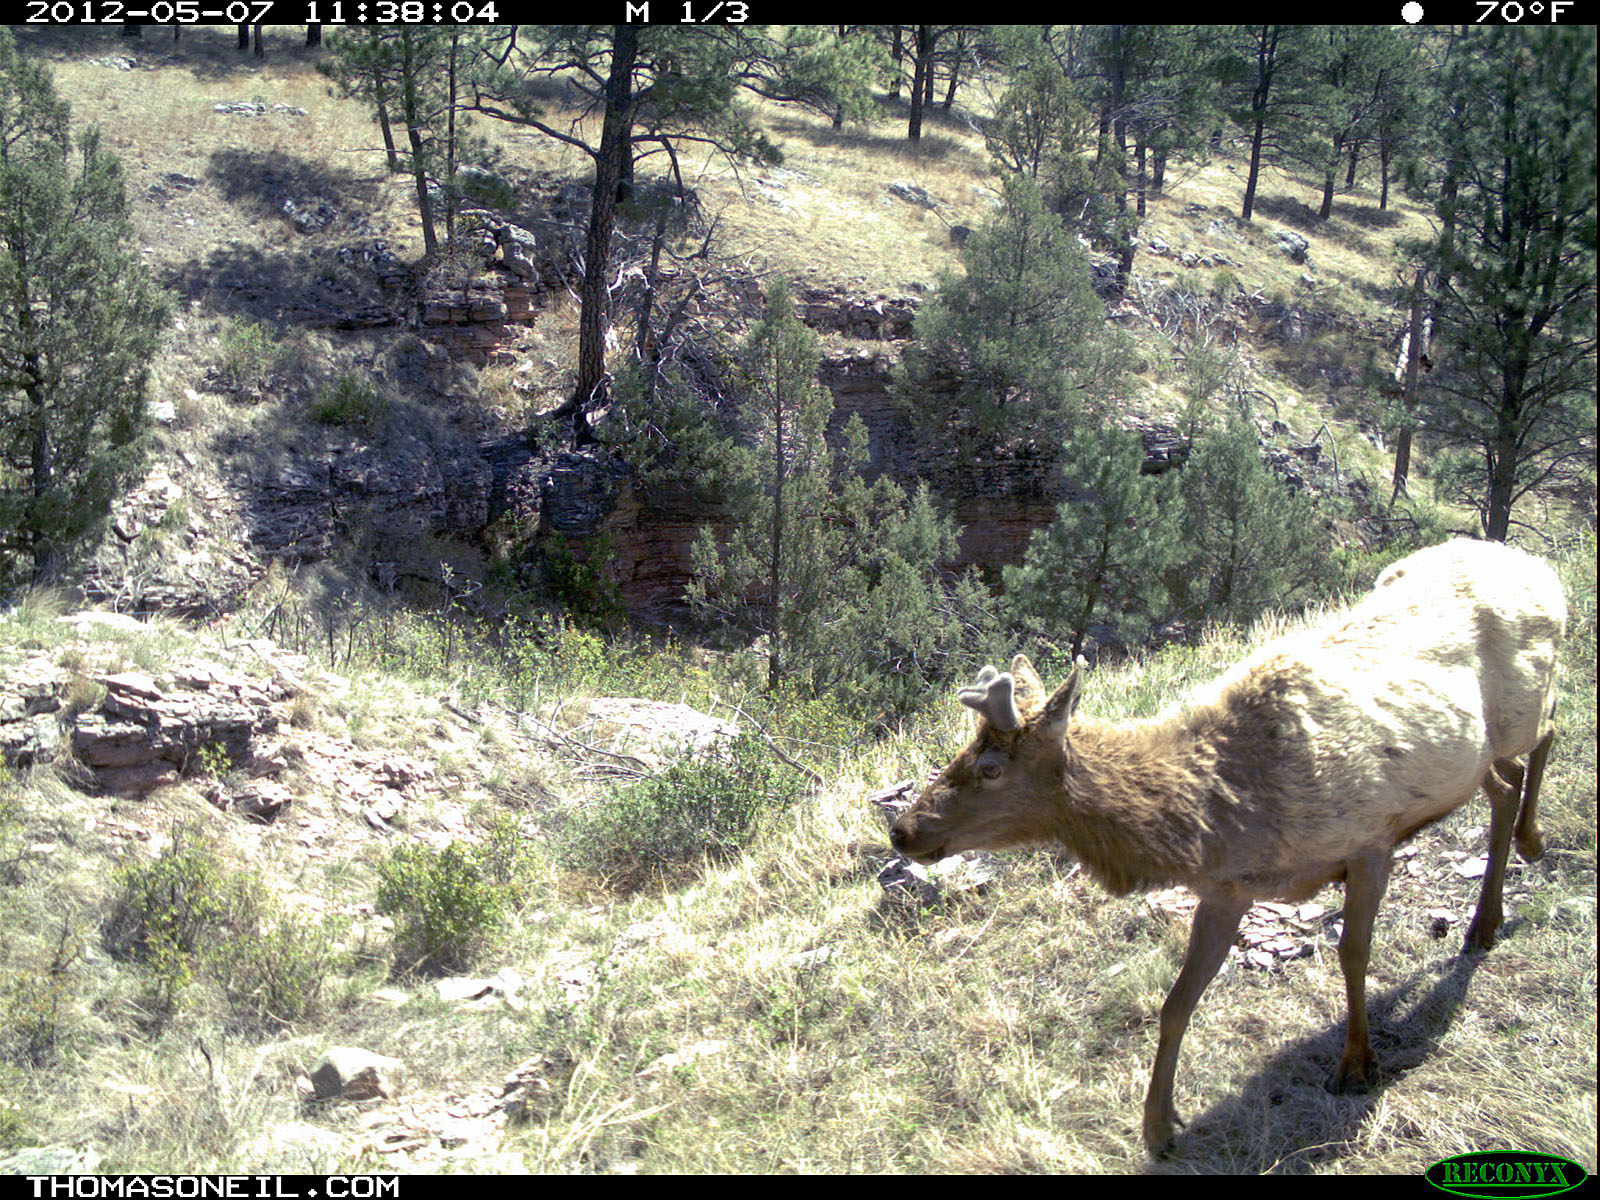 Trailcam picture of elk, Wind Cave National Park, May 7.  Click for next photo.